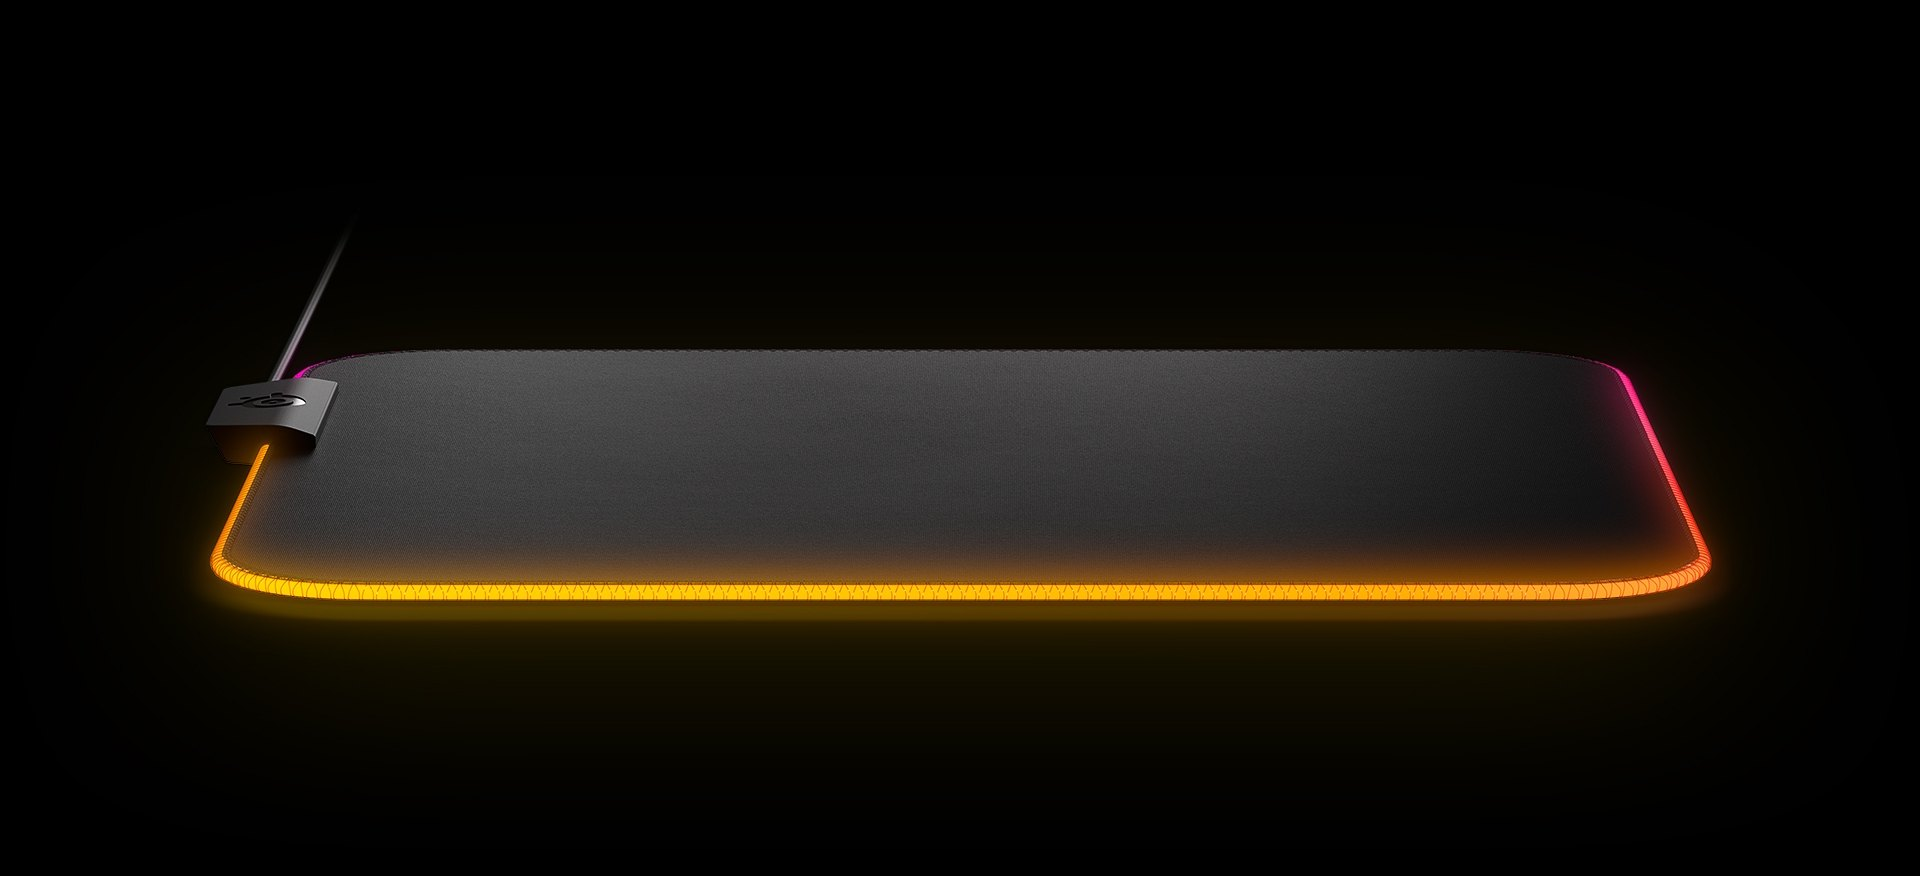 LIGHT UP THE BATTLEFIELD - SteelSeries Engine software unlocks an impressive arsenal of Engine Apps that make customization easy and intuitive. Unleash the full power of dynamic 2-zone RGB backlighting to create complex lighting effects in seconds.